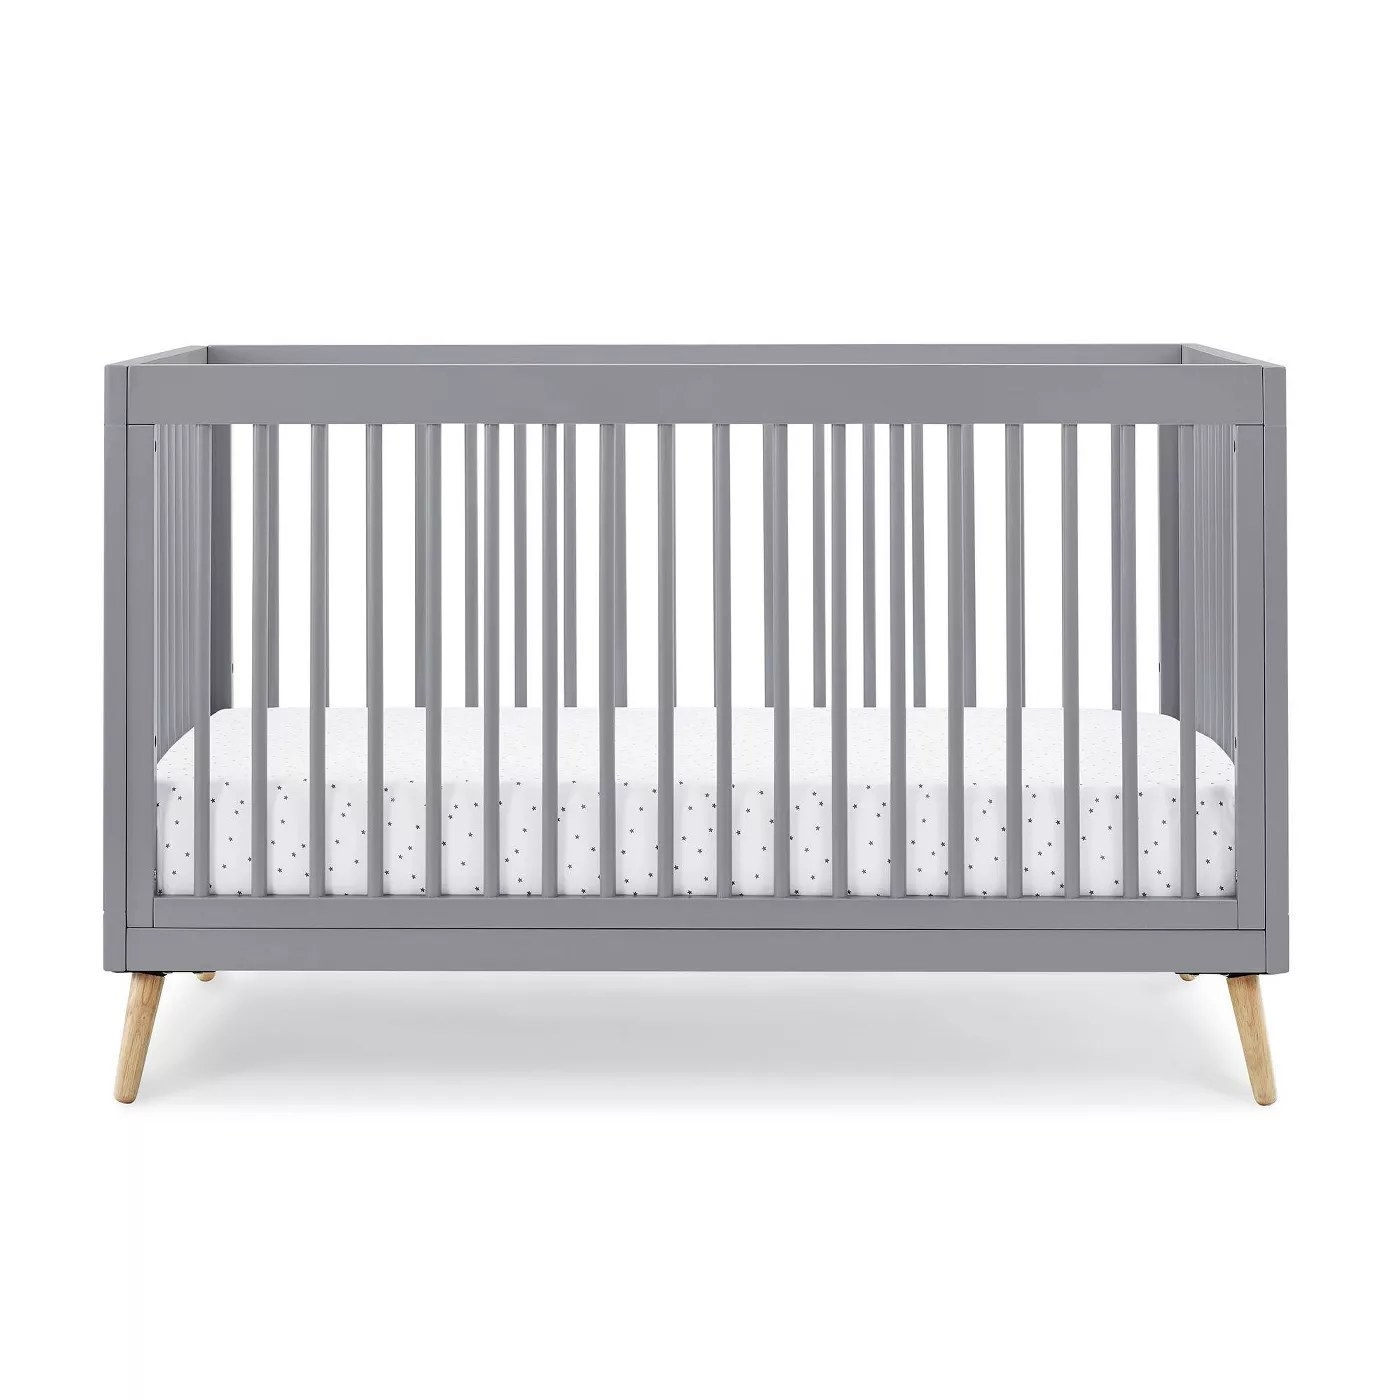 The gray crib with light wooden legs